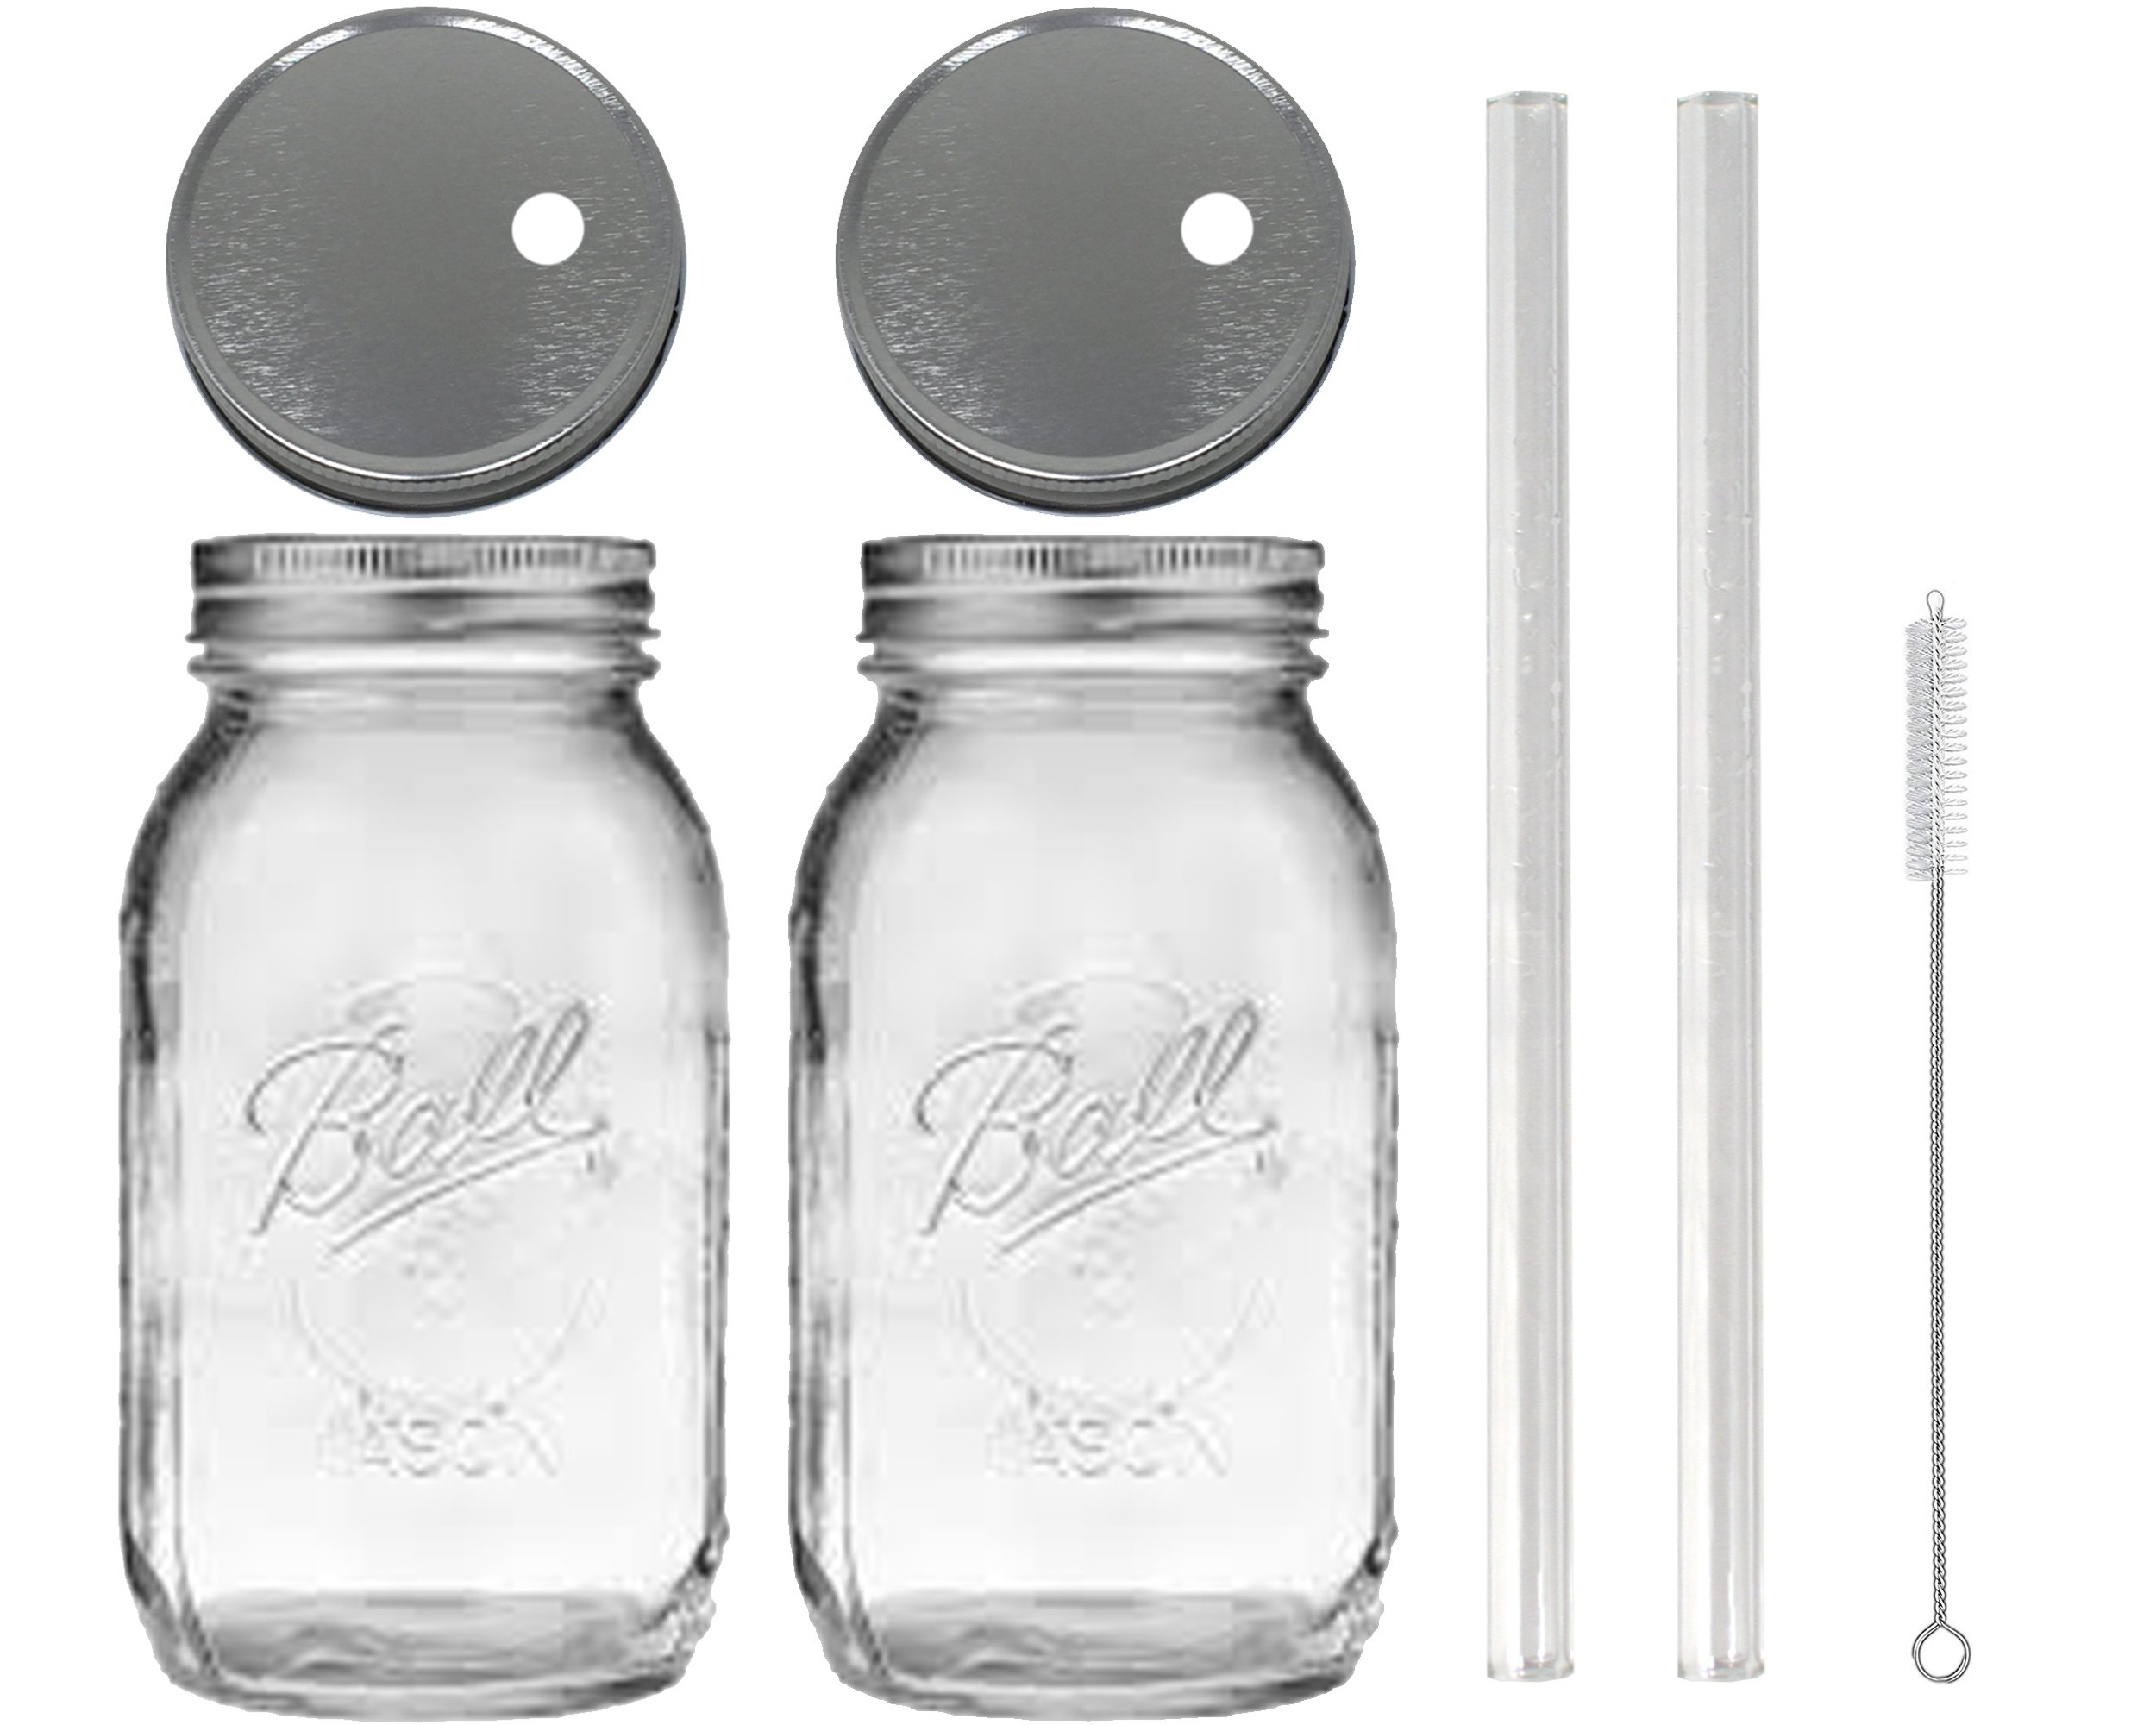 2 Glass Mason Drinking Jars with 2 Straw Hole Lids, 2 Glass Straws (10''x 9.5mm) and 1 Straw Cleaner (Silver) by Unknown